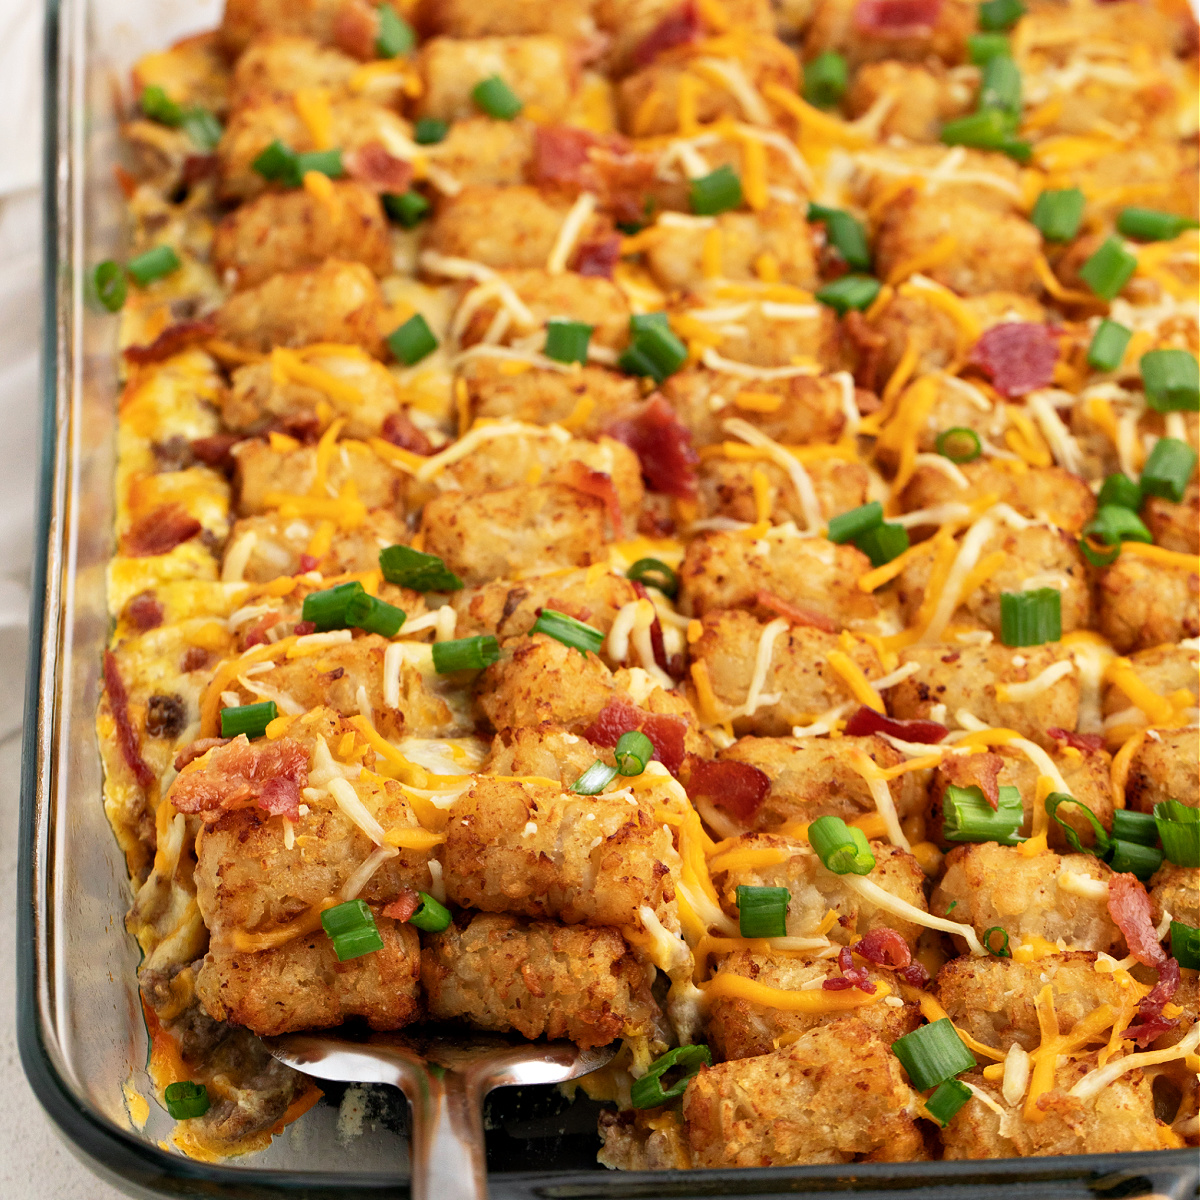 Bacon cheeseburger tater tot casserole being scooped from a casserole dish.